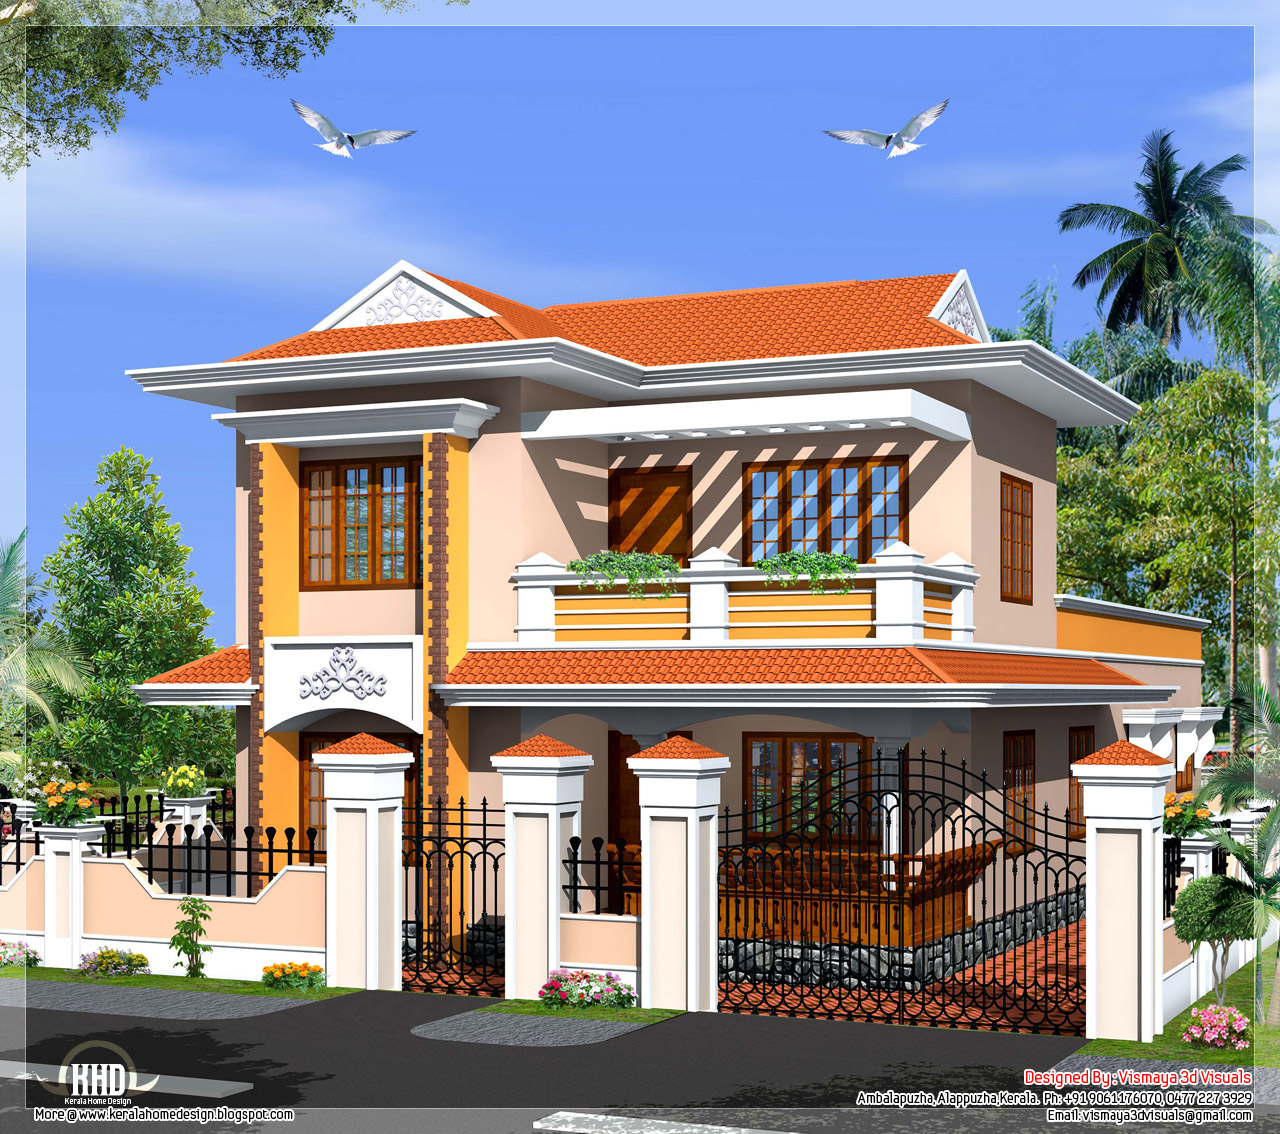 Kerala Model Villa In 2110 In Square Feet Kerala Home Design And